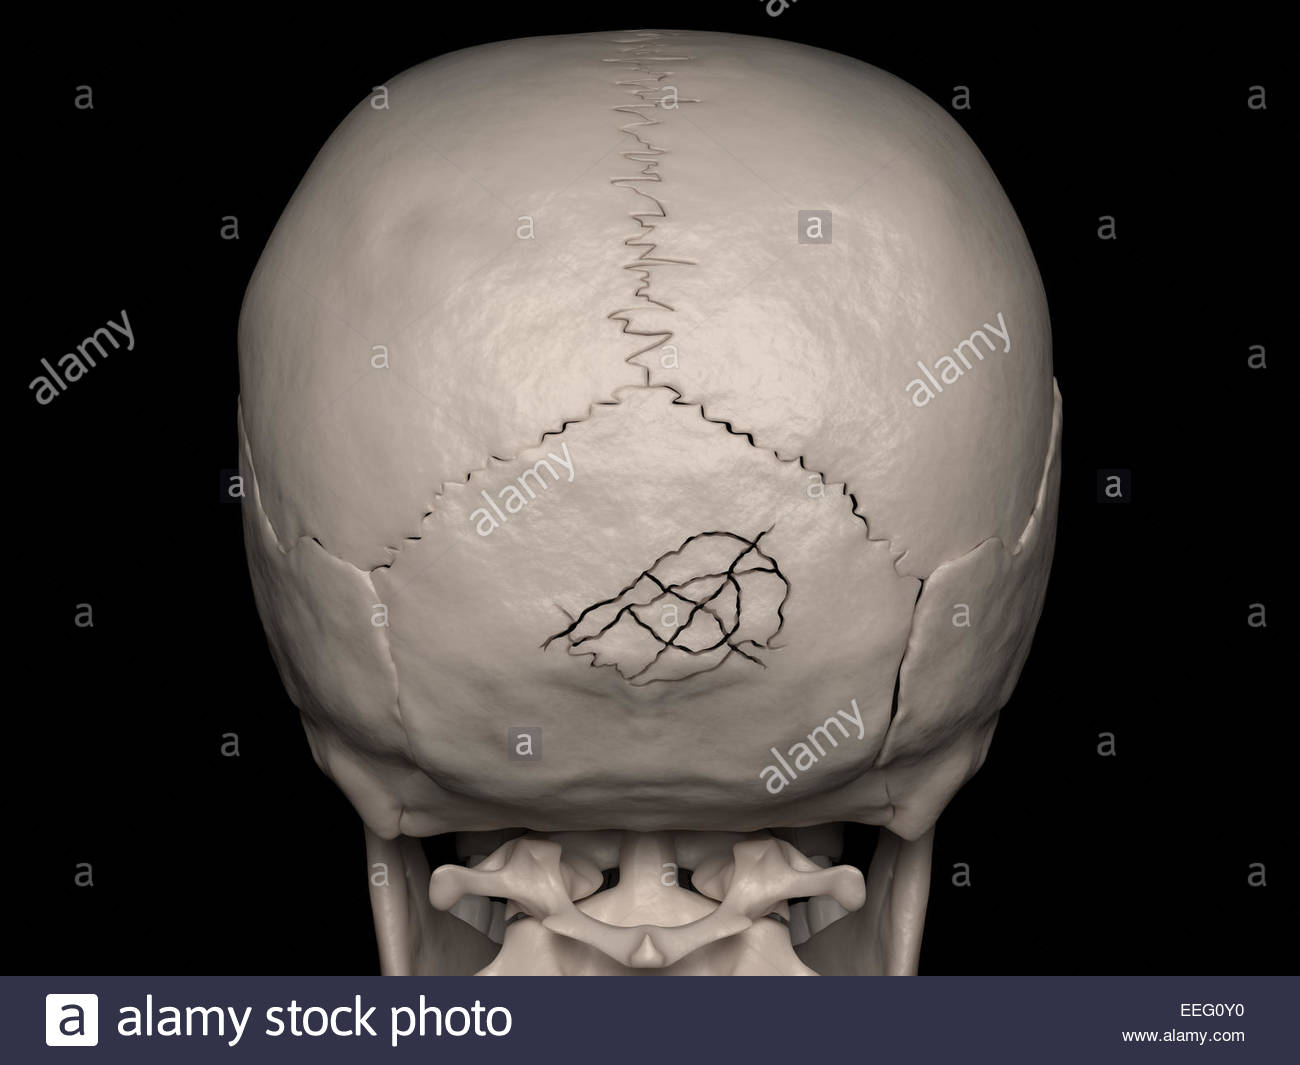 Digital medical illustration depicting a comminuted cranial vault fracture of the occipital bone (skull fracture). - Stock Image